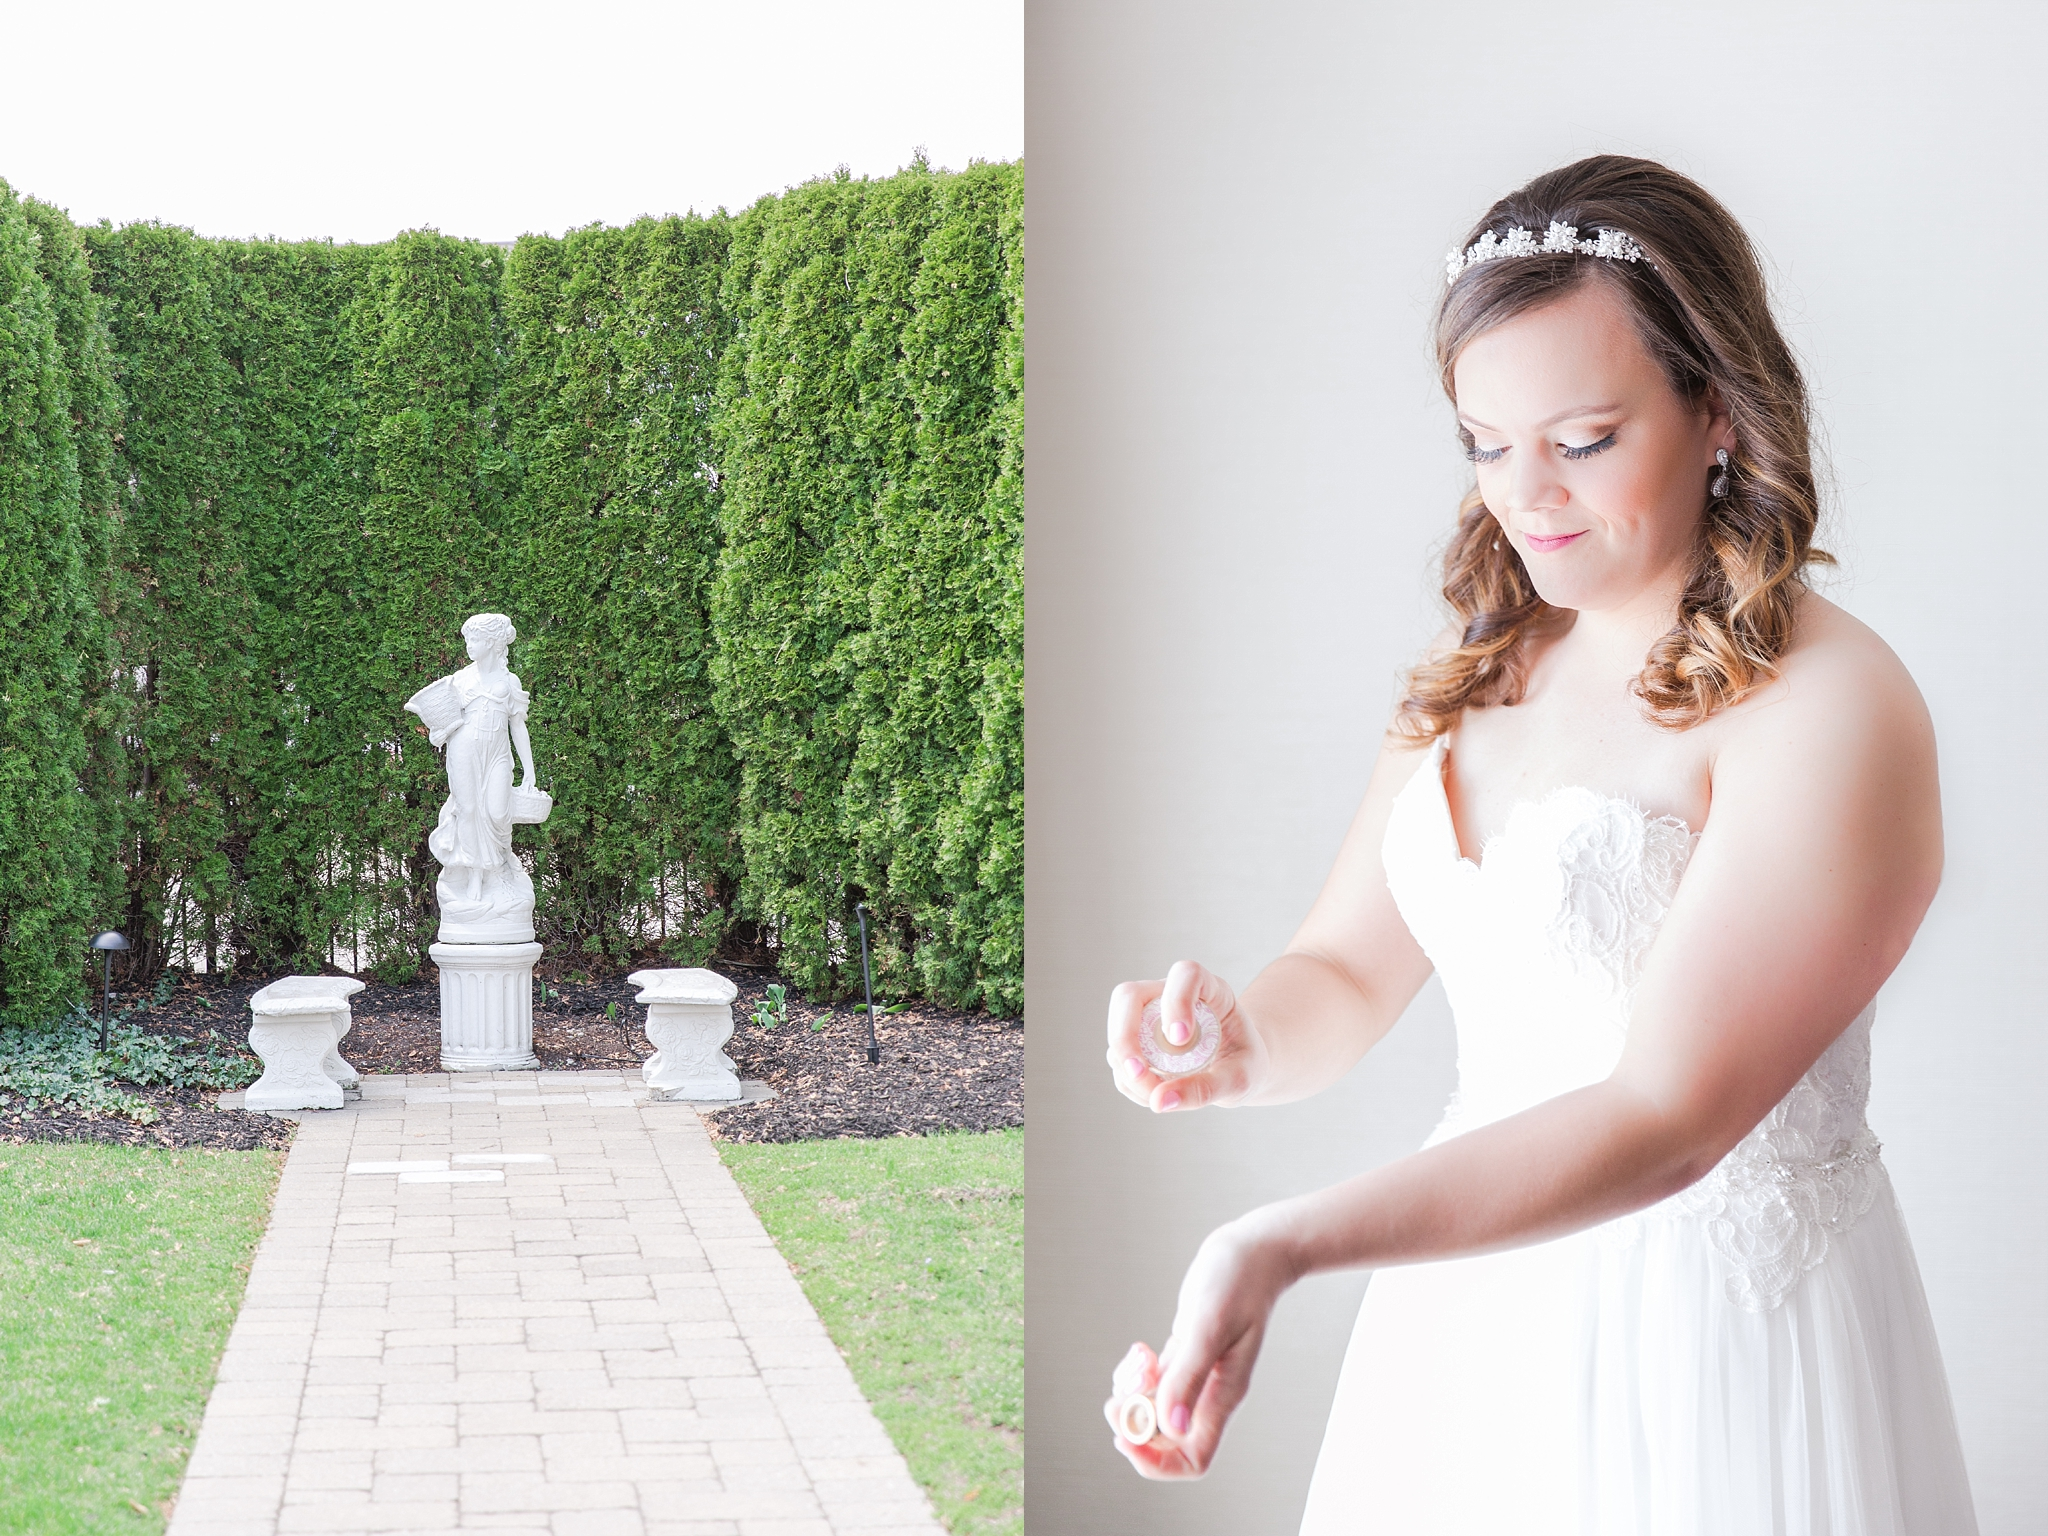 romantic-artful-candid-wedding-photos-in-st-clair-shores-at-the-white-house-wedding-chapel-by-courtney-carolyn-photography_0011.jpg